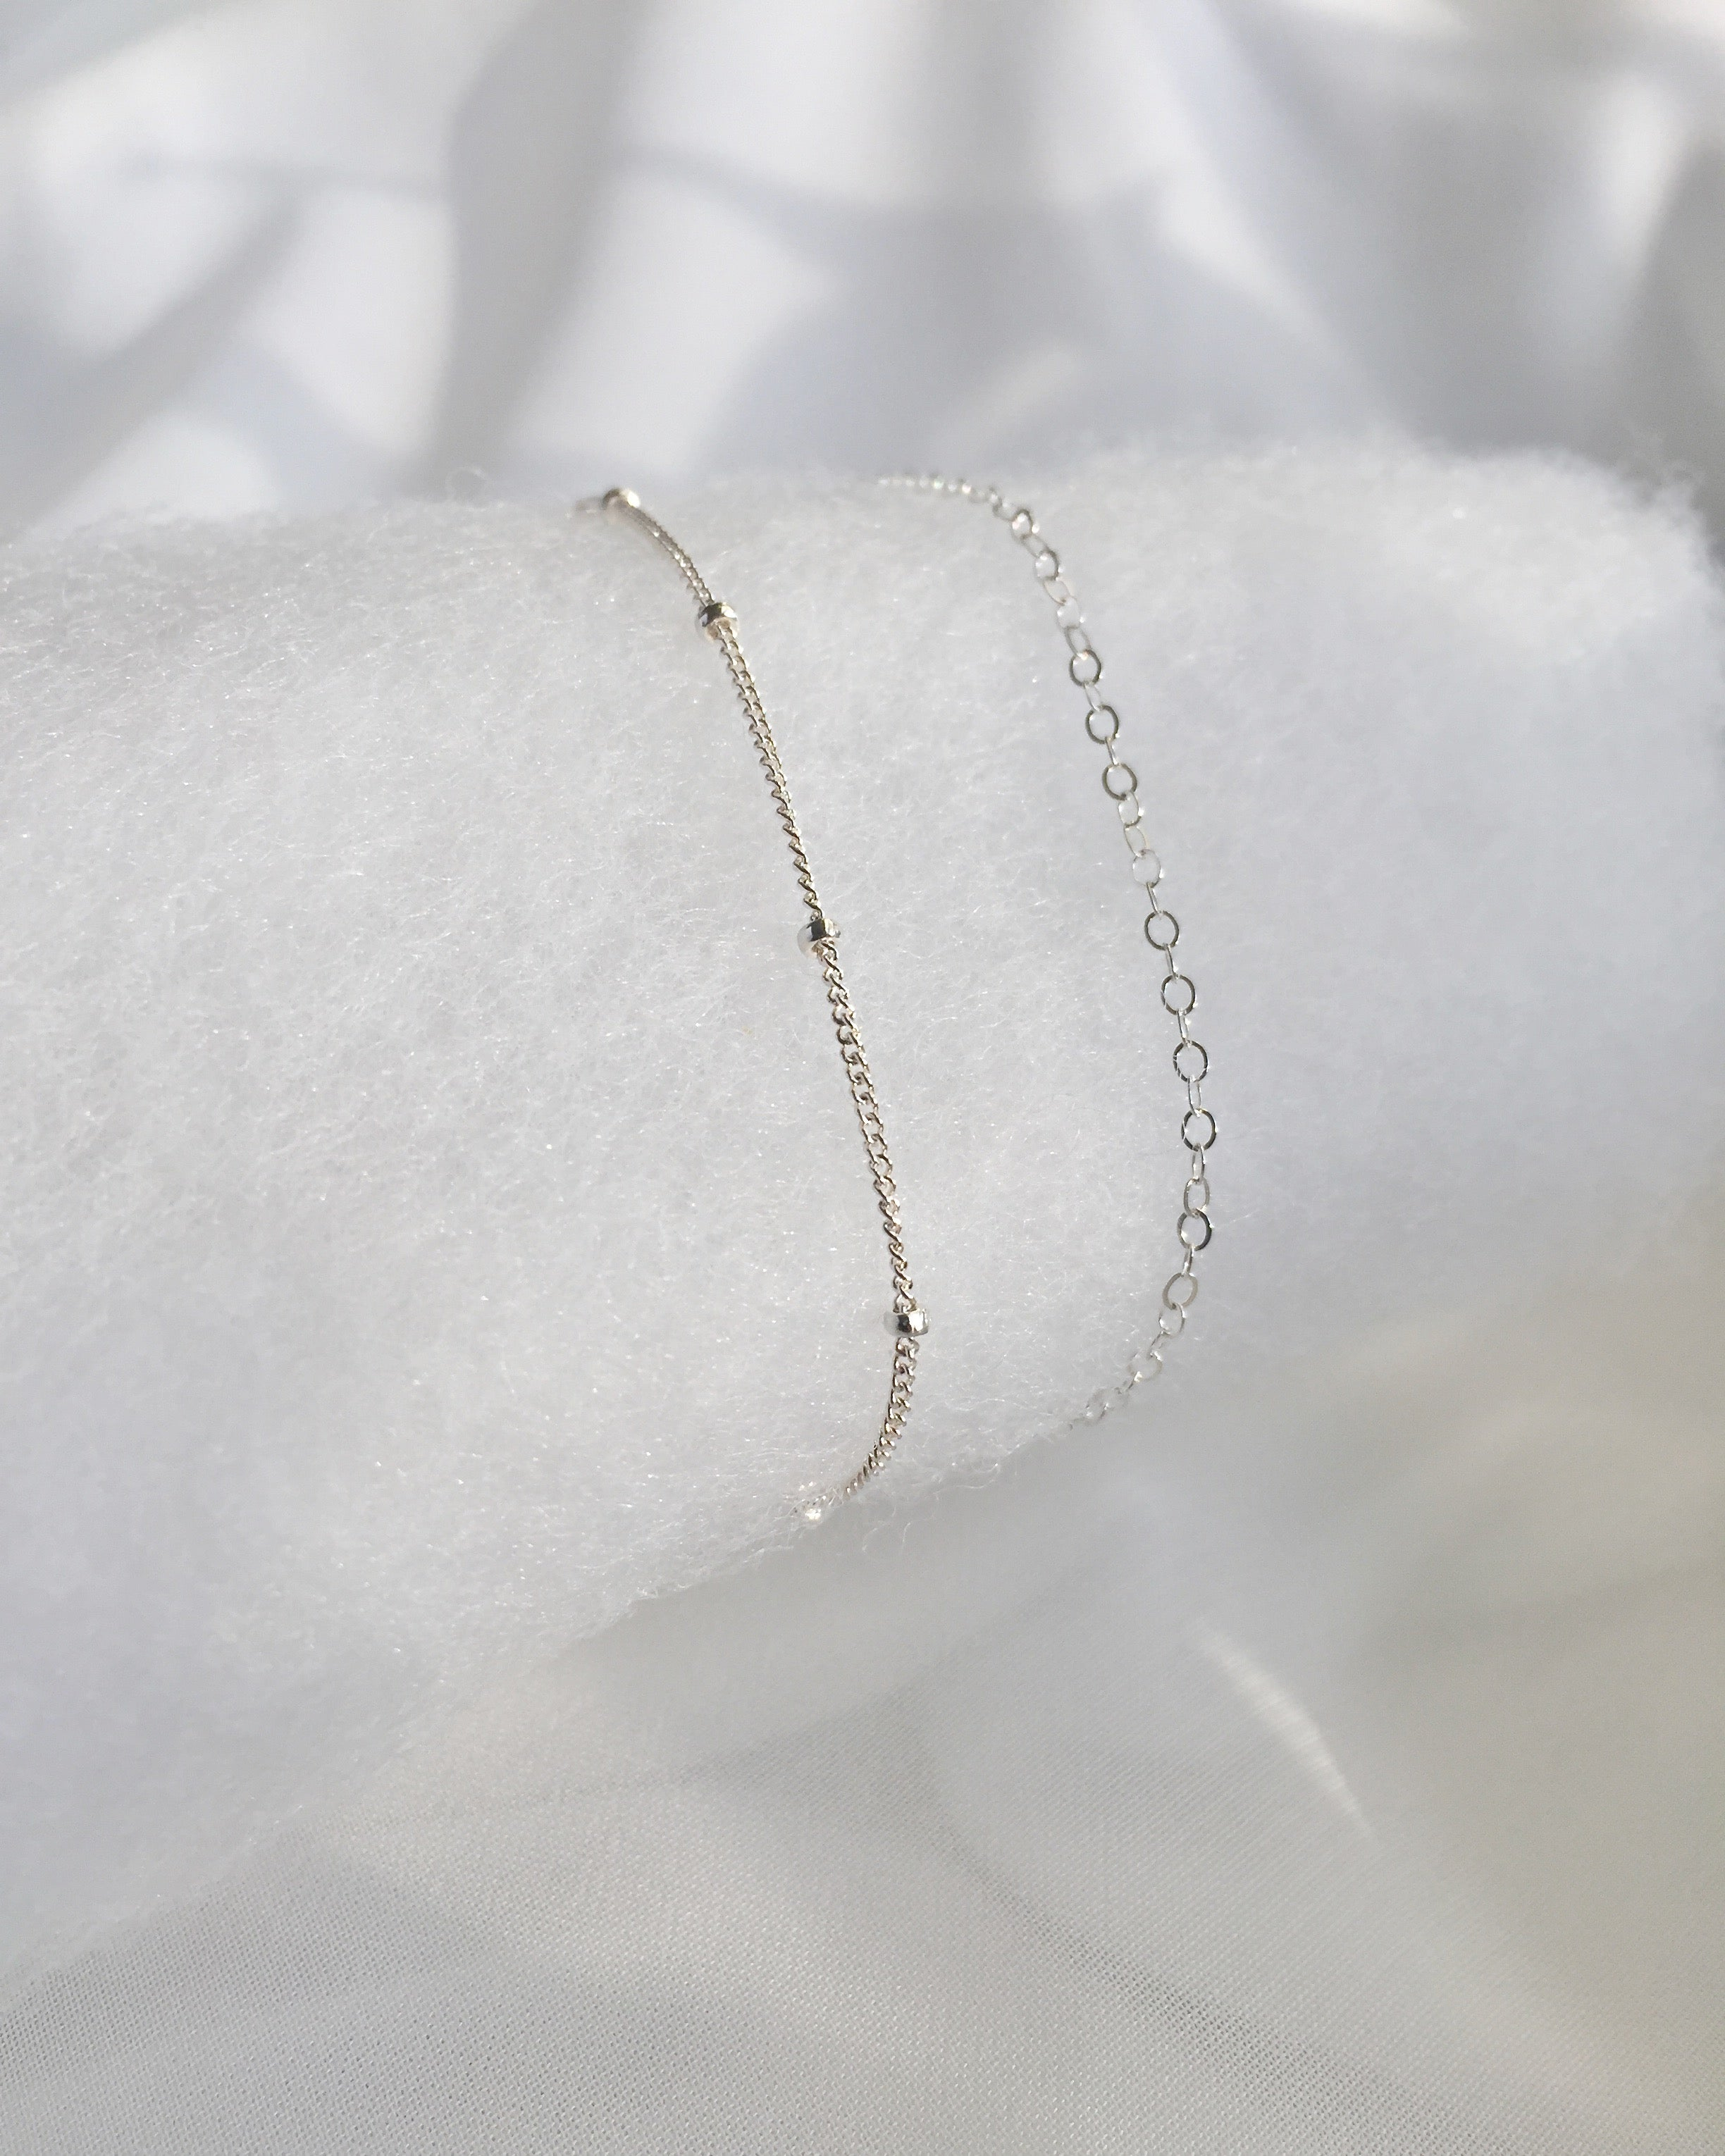 Delicate Thin Chain Bracelet Set | Dainty Layered Bracelet | IB Jewelry